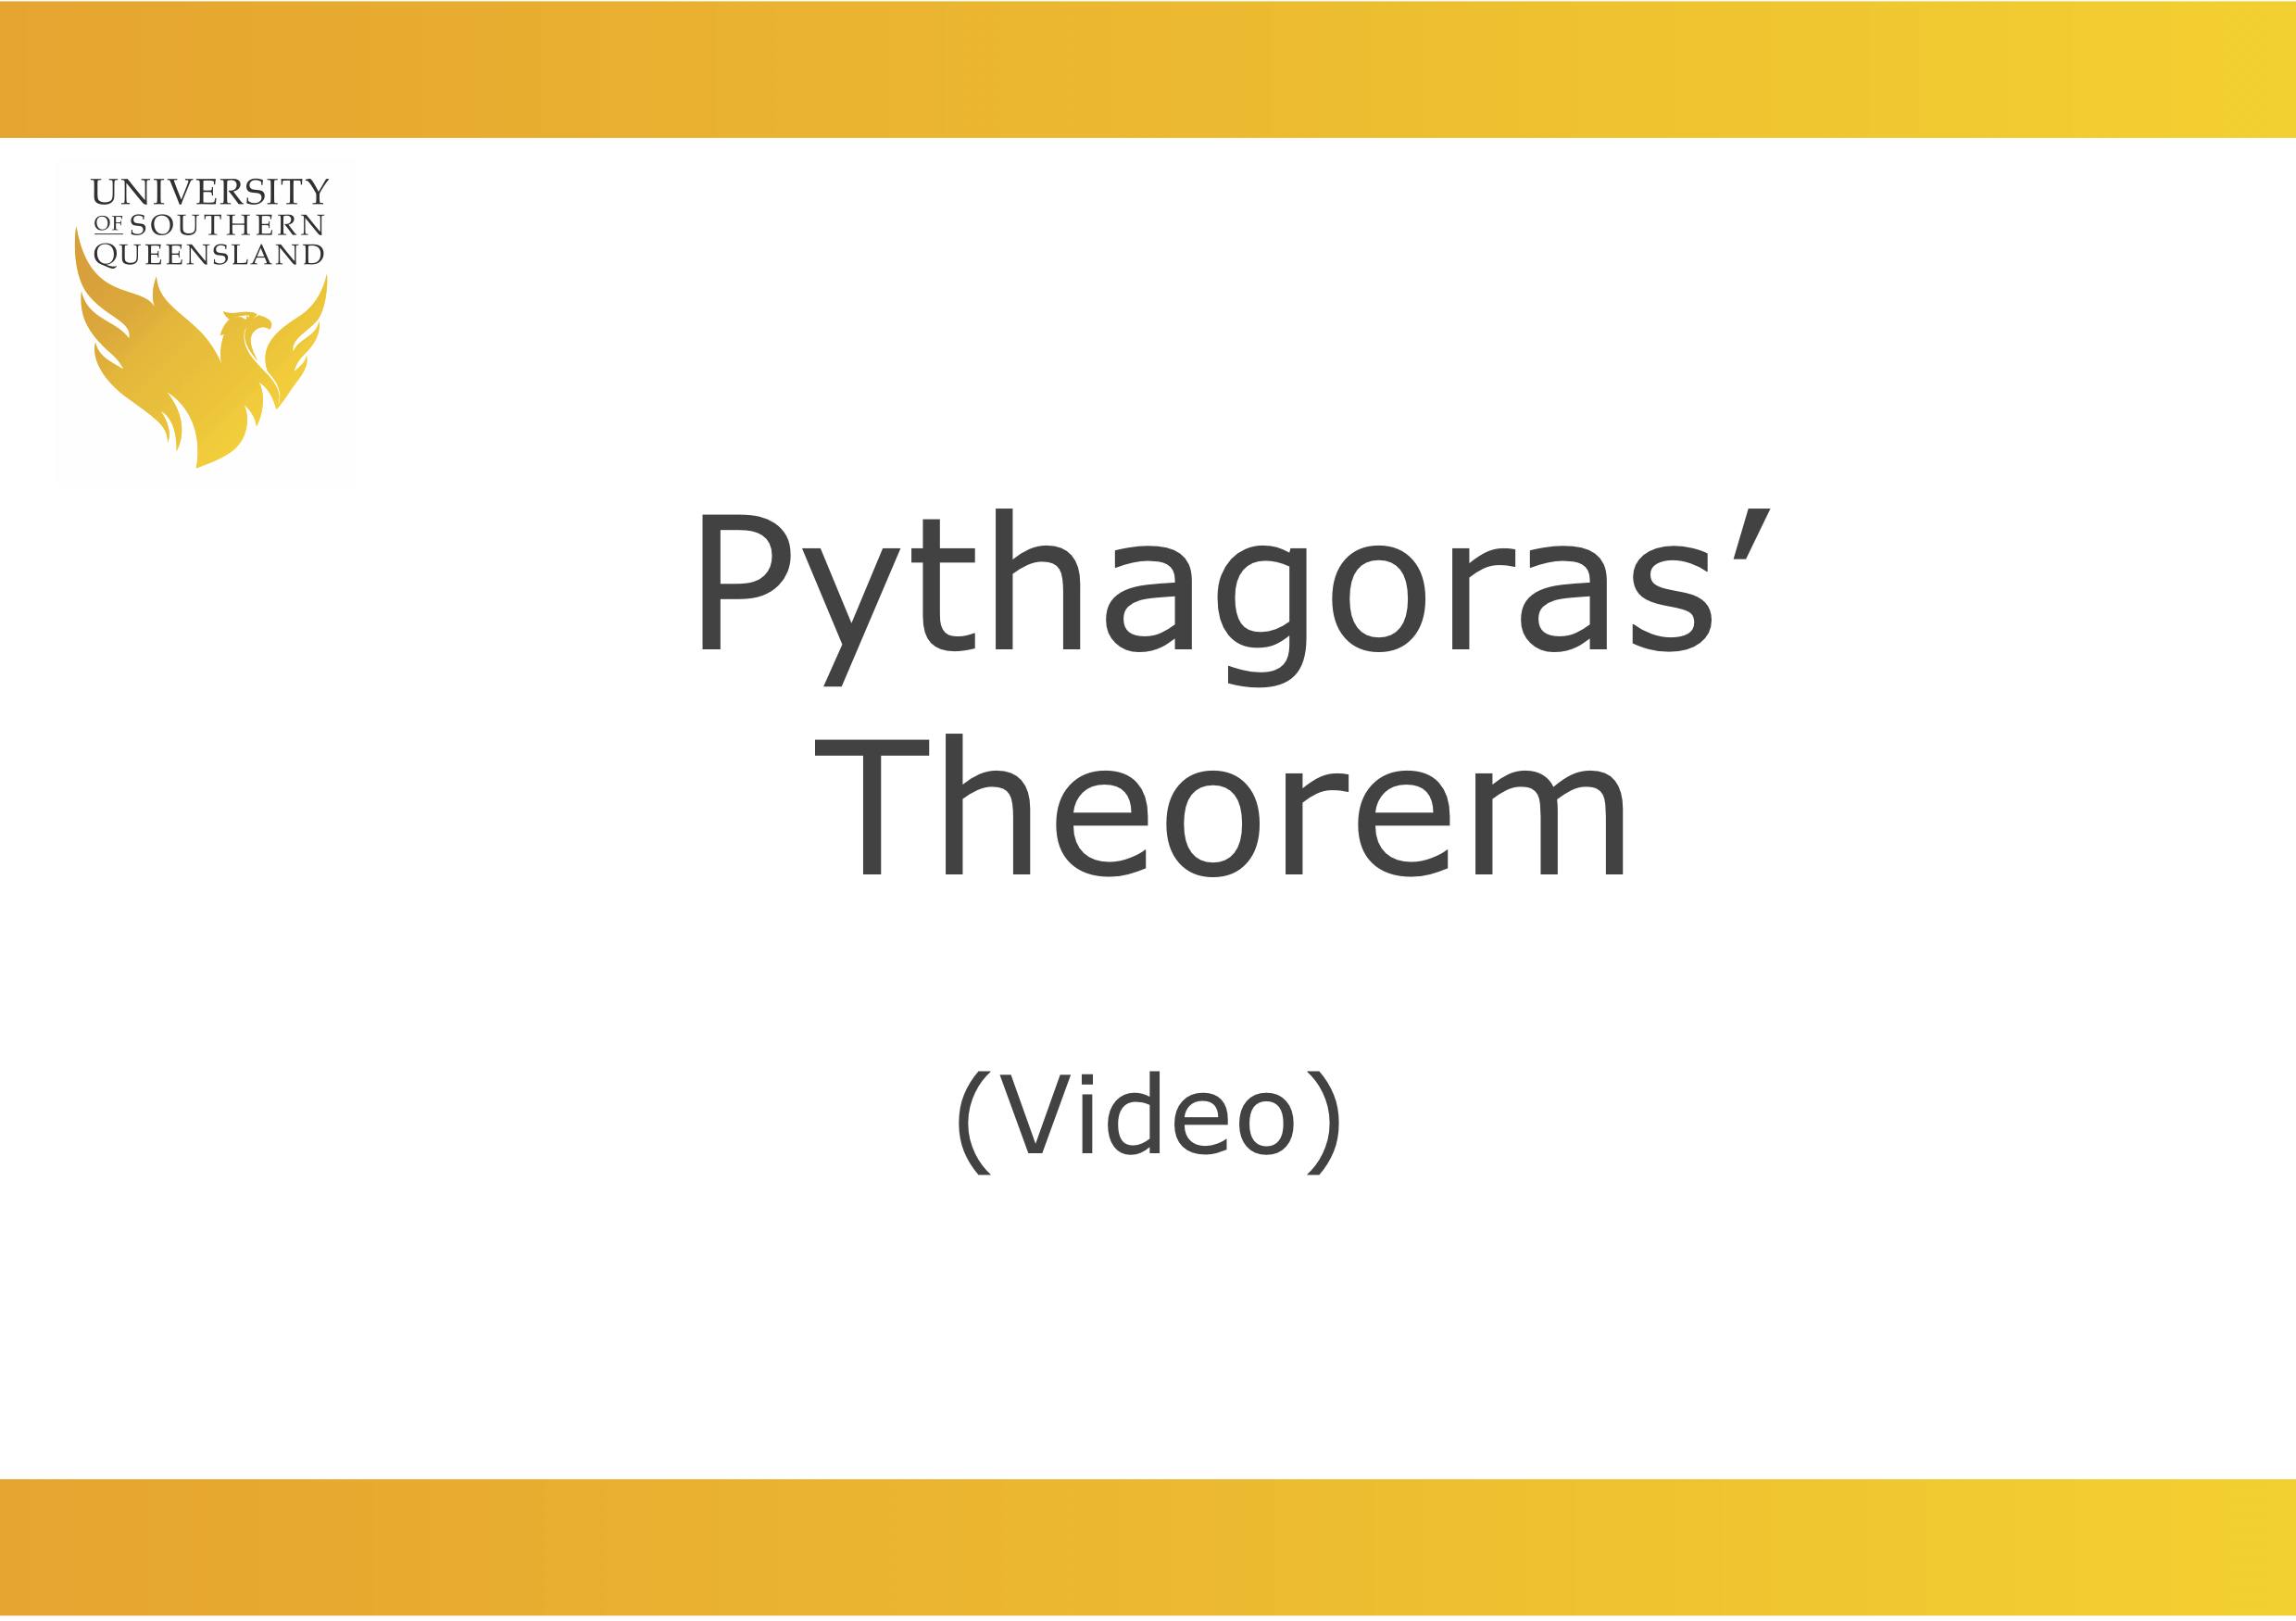 Image to play the video for Pythagoras' Theorem